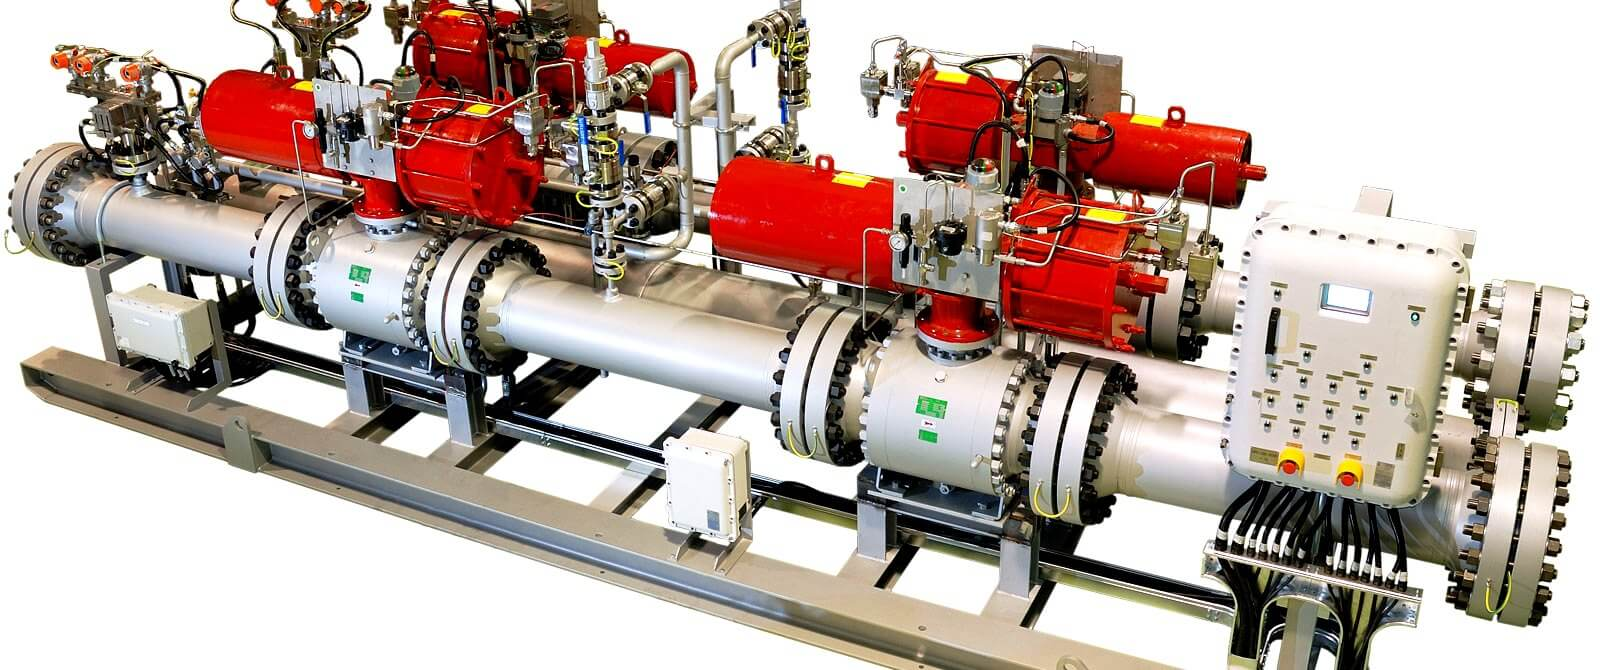 High Integrity Pressure Protection Systems (HIPPS)